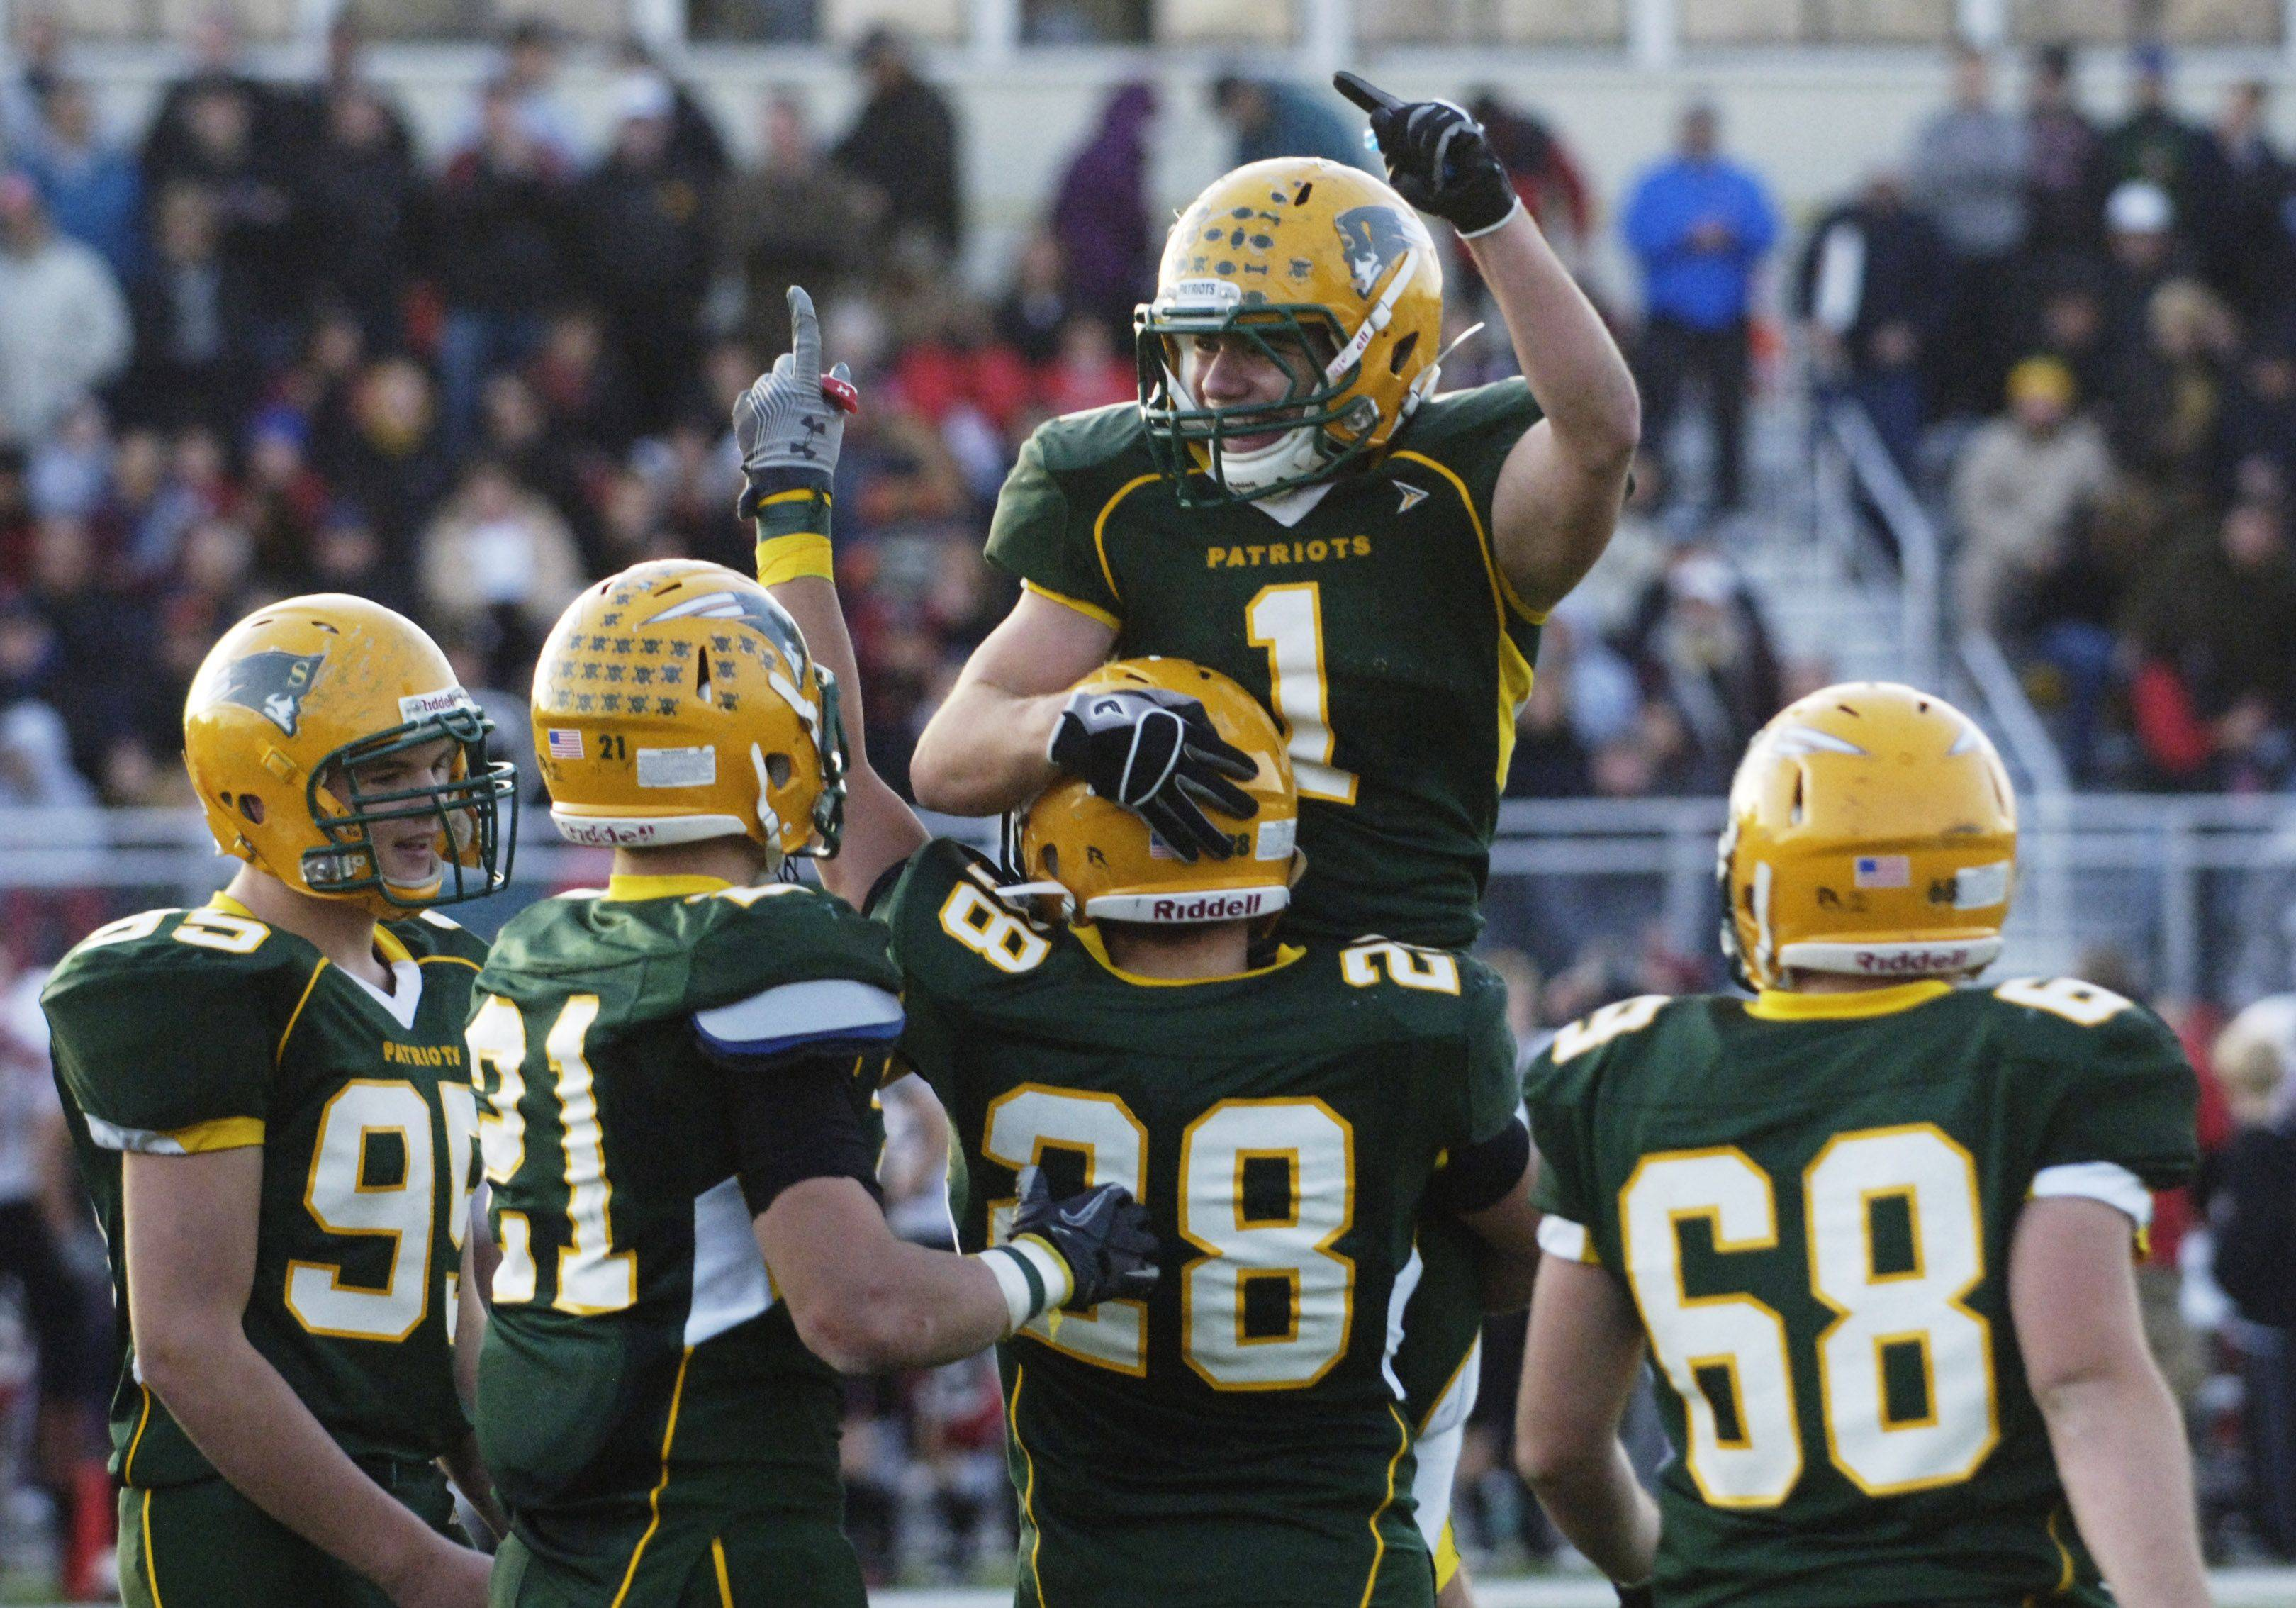 Stevenson's Kevin Foley, top, celebrates with teammates after the Patriots defeated Maine South during Saturday's 8A playoff game.